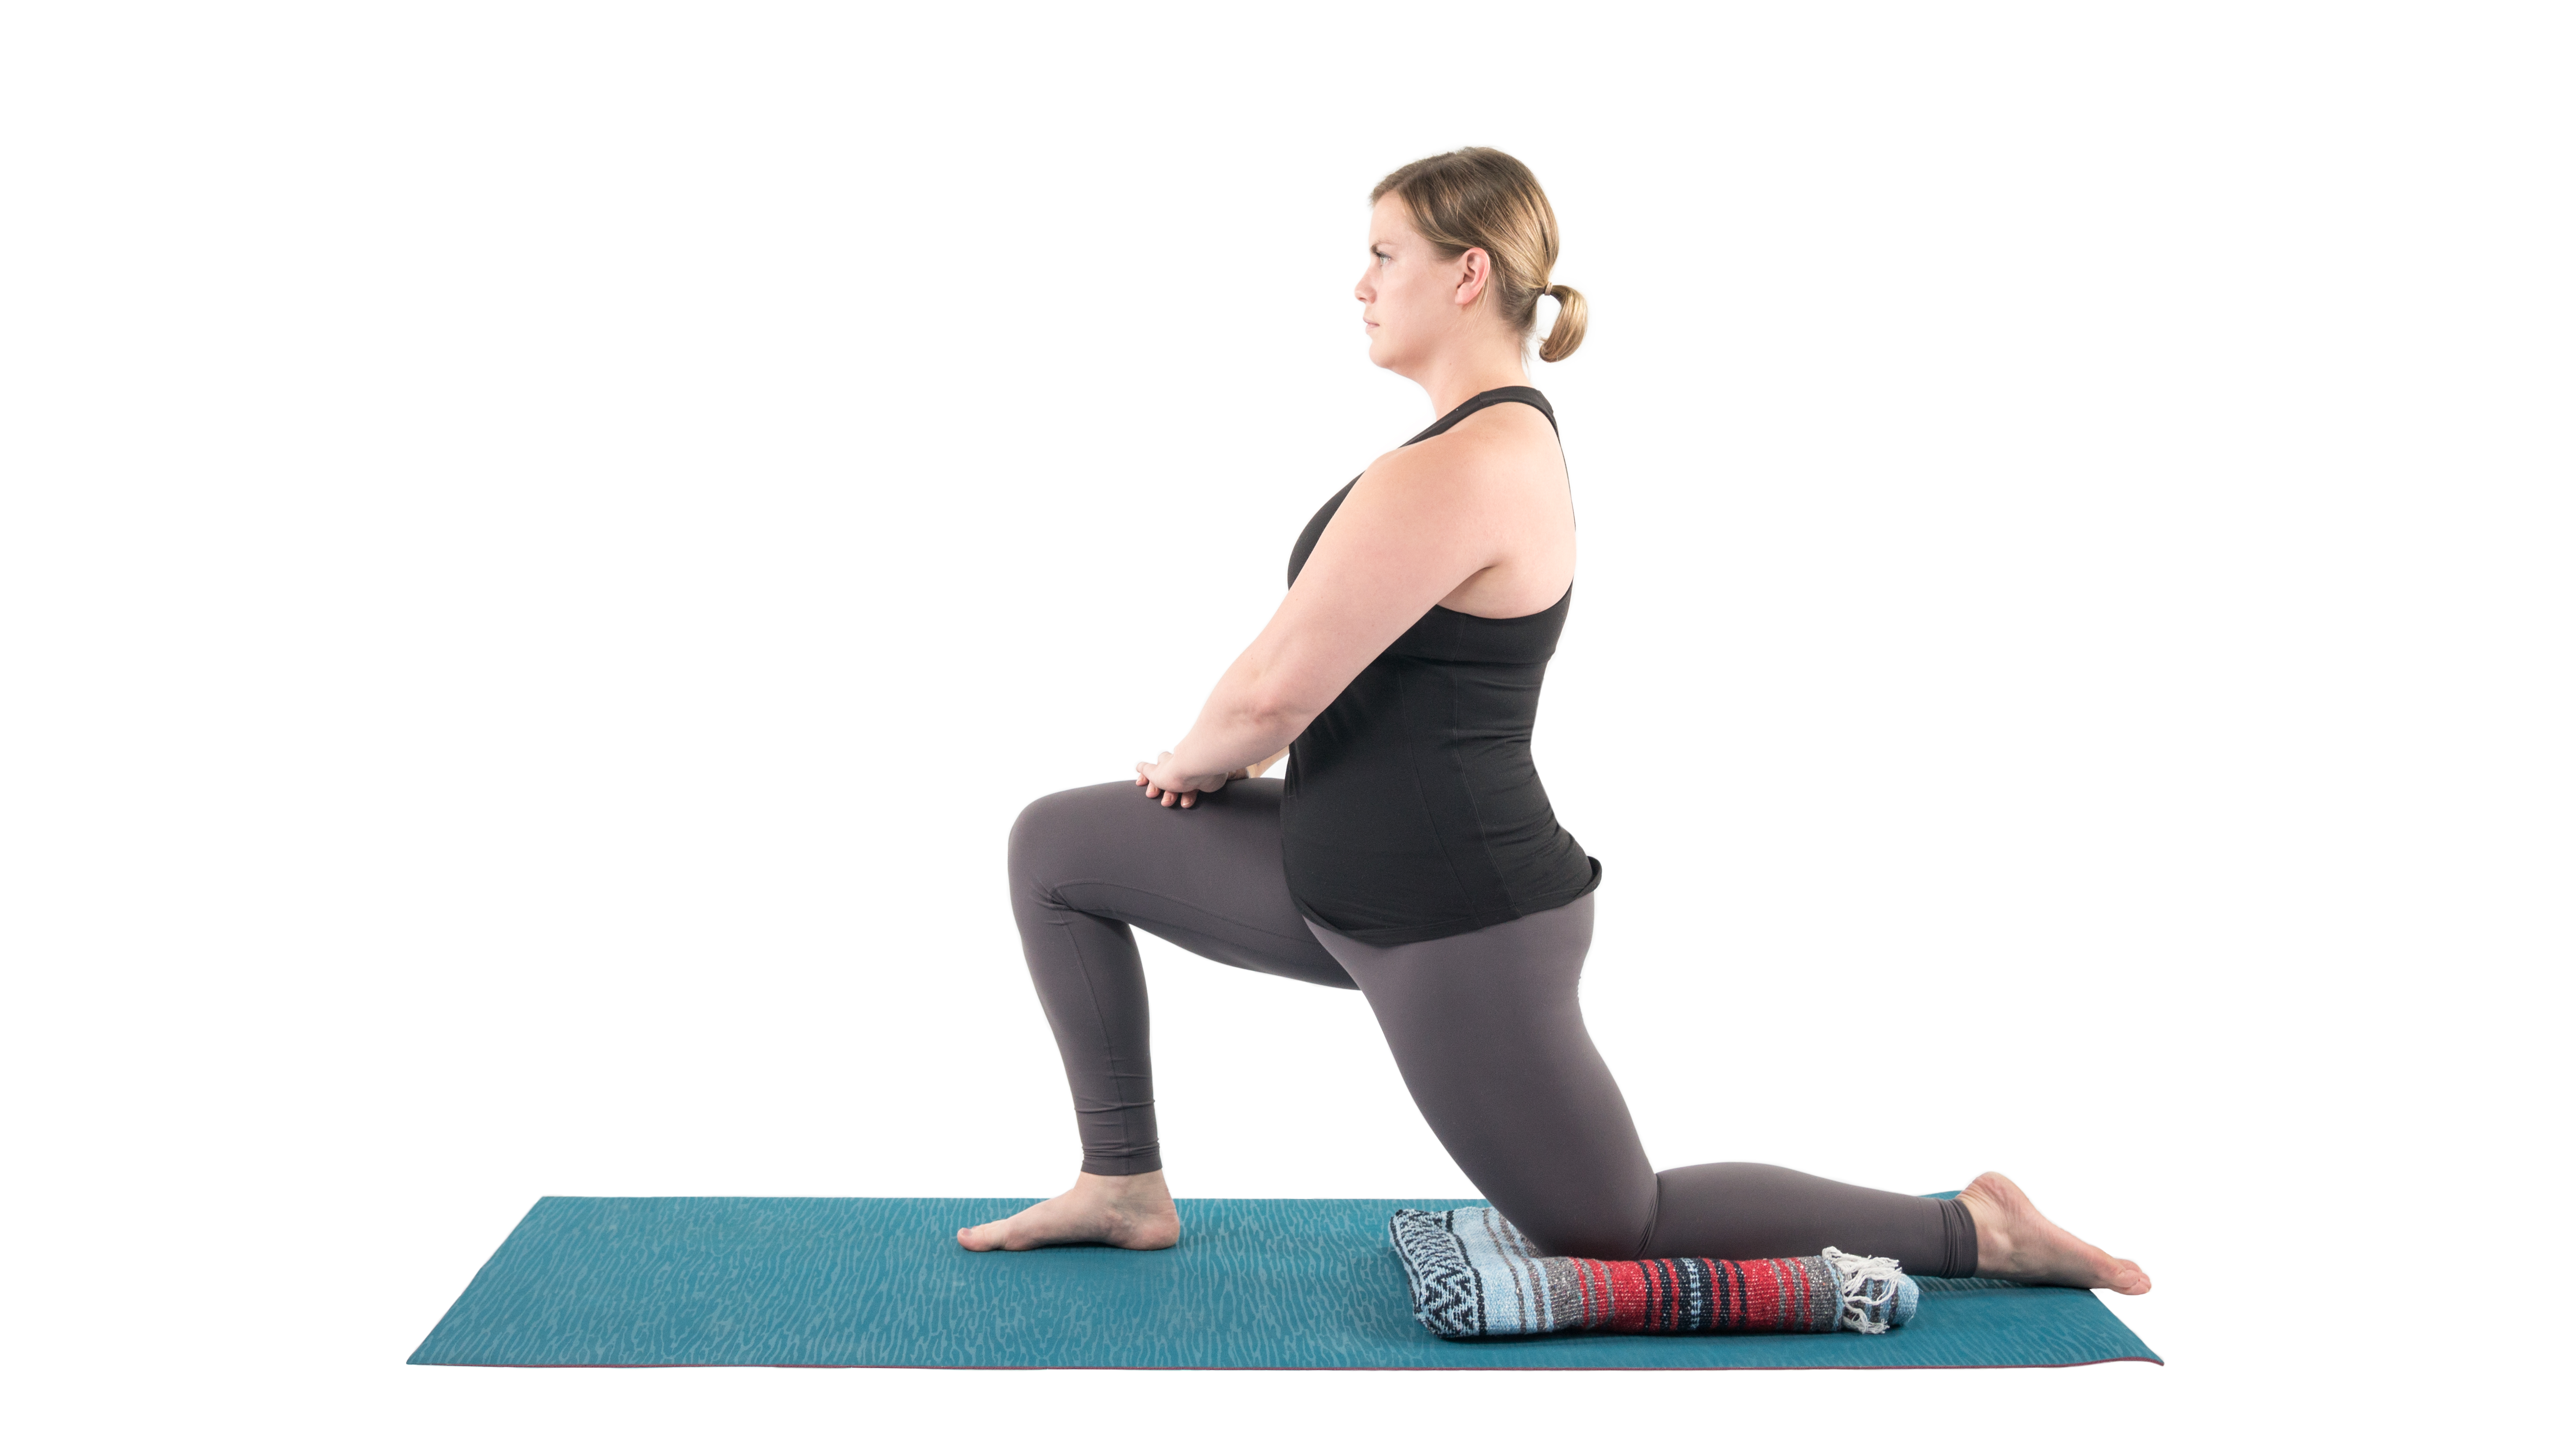 Woman in the low lunge quad stretch yoga pose in preparation for the Dancer Pose (Natarajasana)